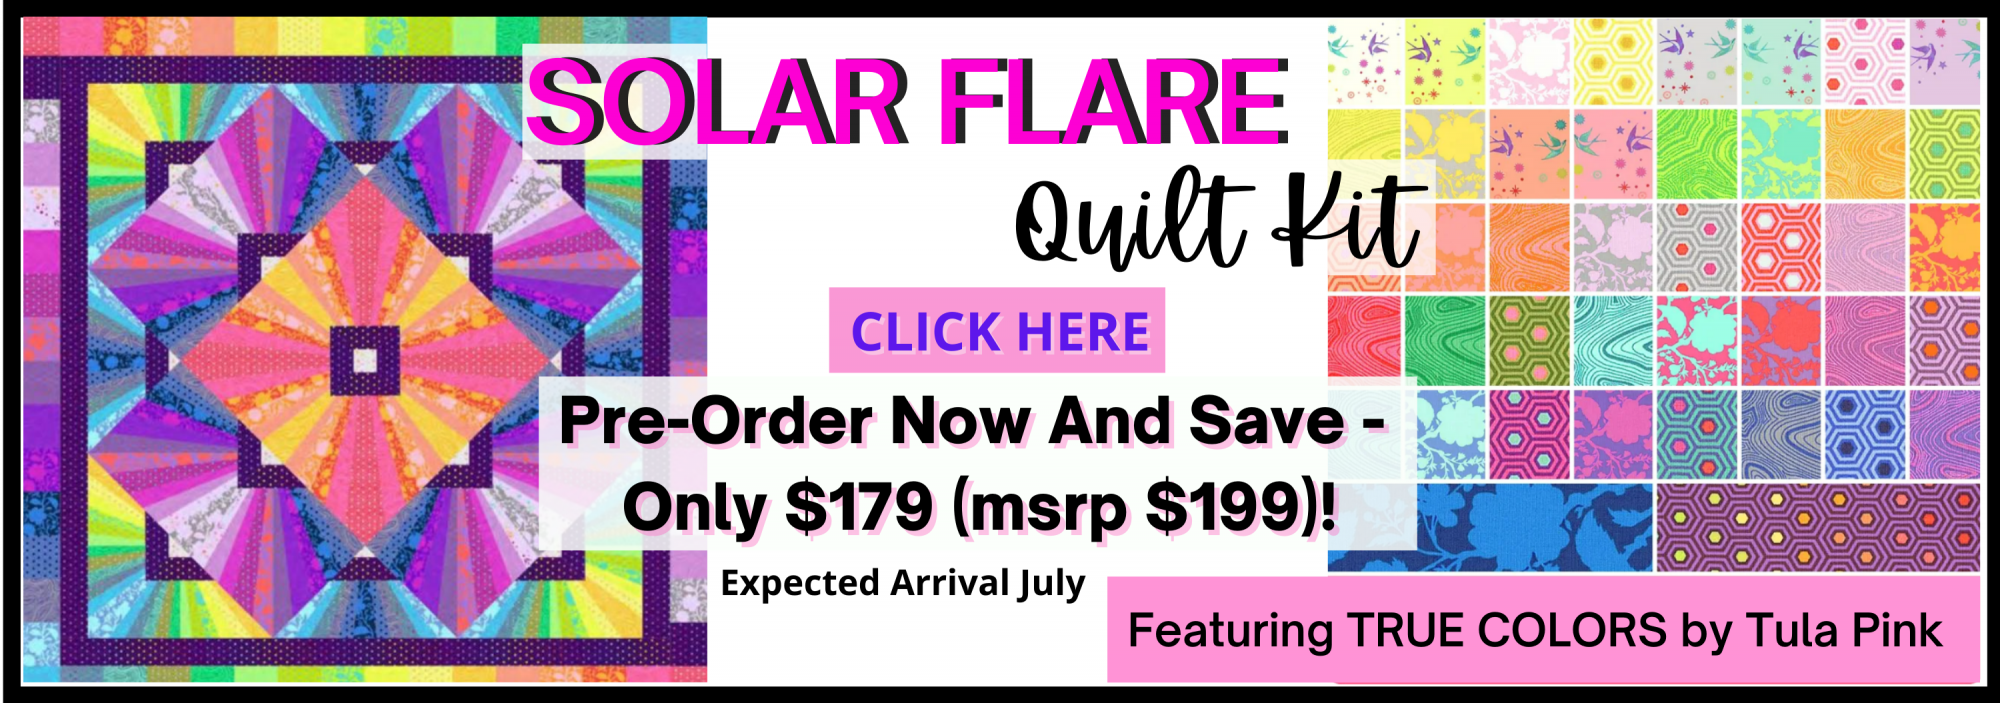 bee's quilt shop st augustine tula pink solar flare quilt kit